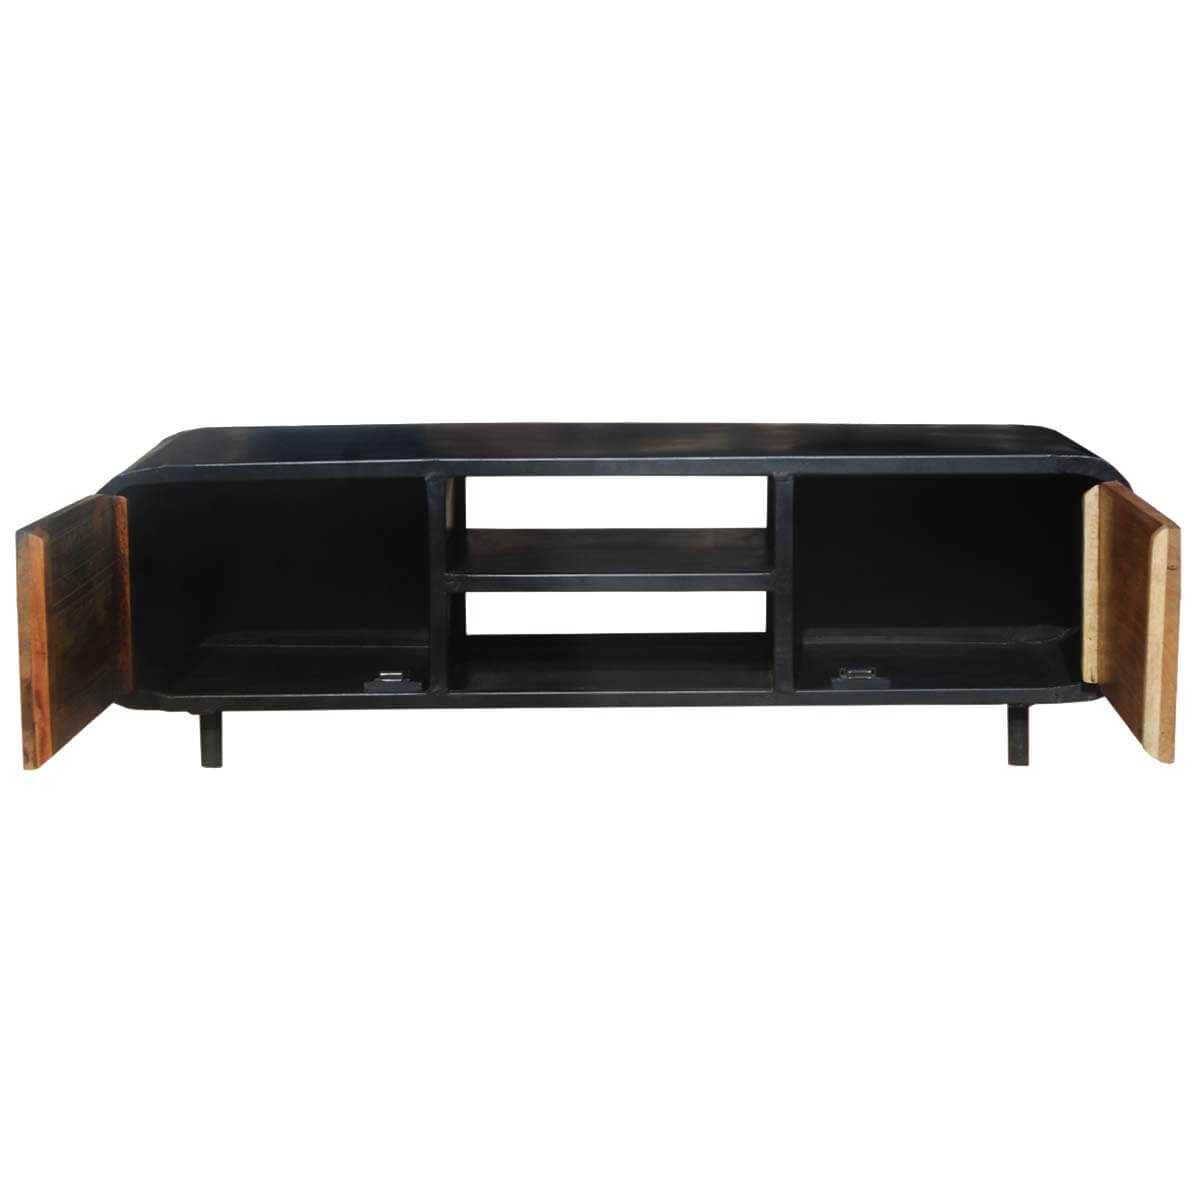 Reclaimed Media Cabinet Retro Reclaimed Wood Iron Media Cabinet Tv Stand